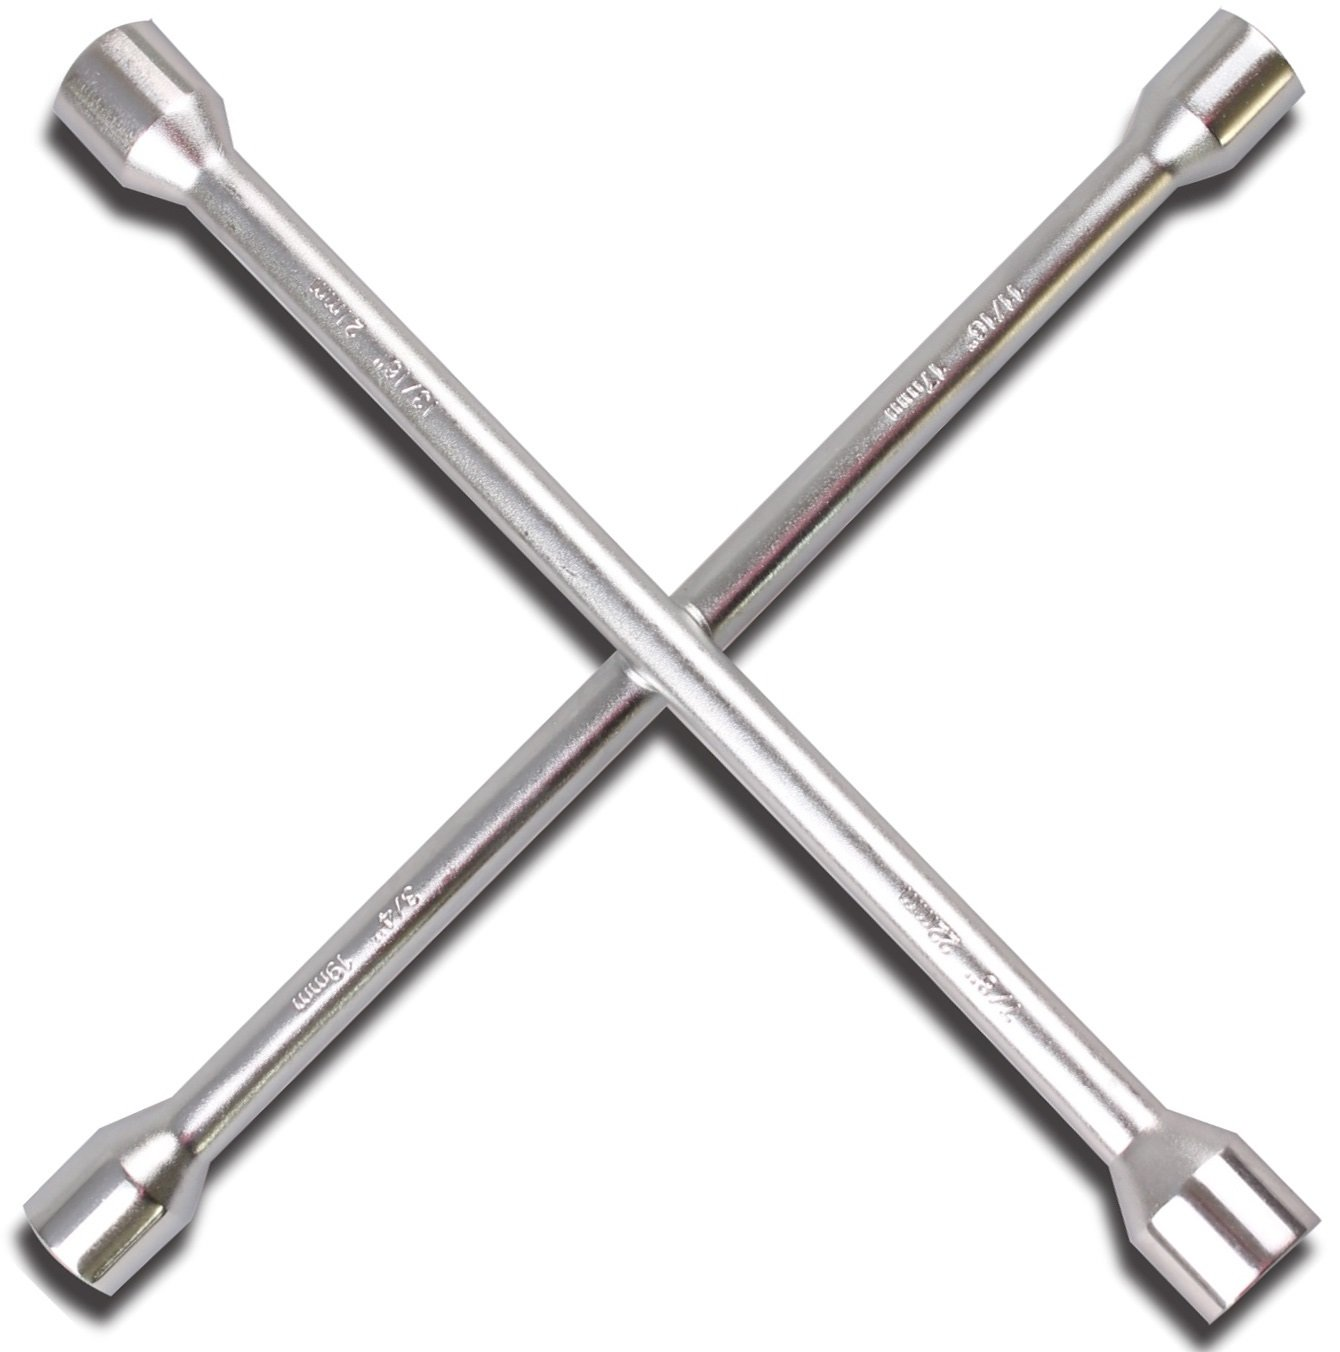 4 way tire iron universal lug wrench car cross nut spin truck old auto tool new 768421342252 ebay. Black Bedroom Furniture Sets. Home Design Ideas